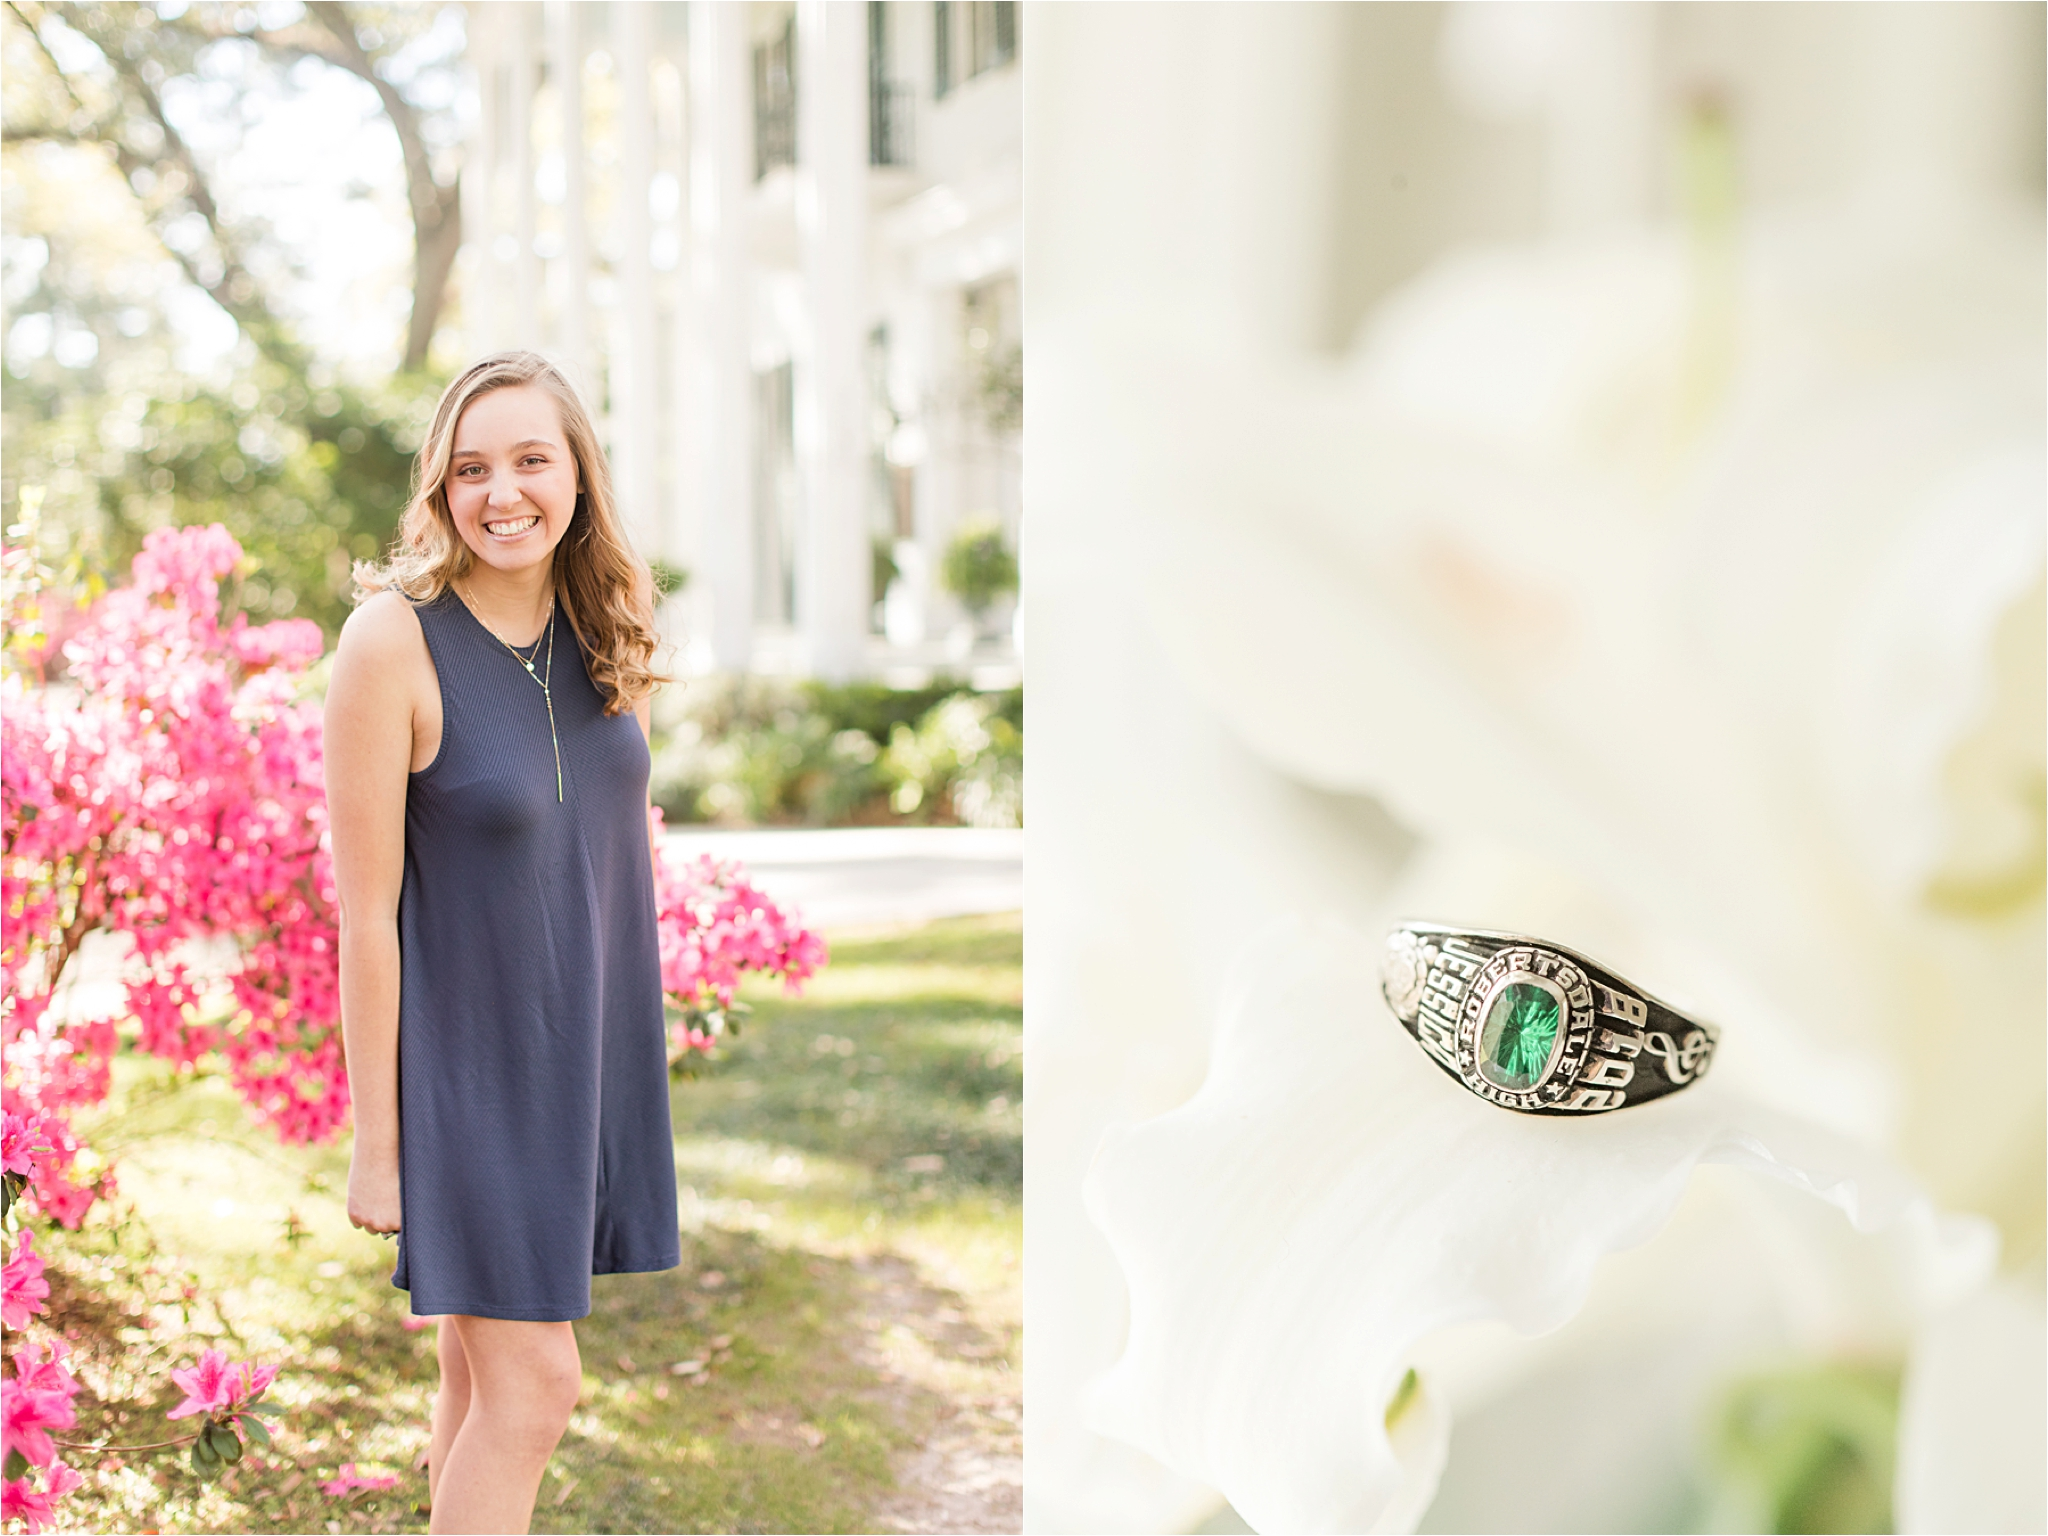 Bragg Mitchell Mansion Senior Photo Session | Jessica